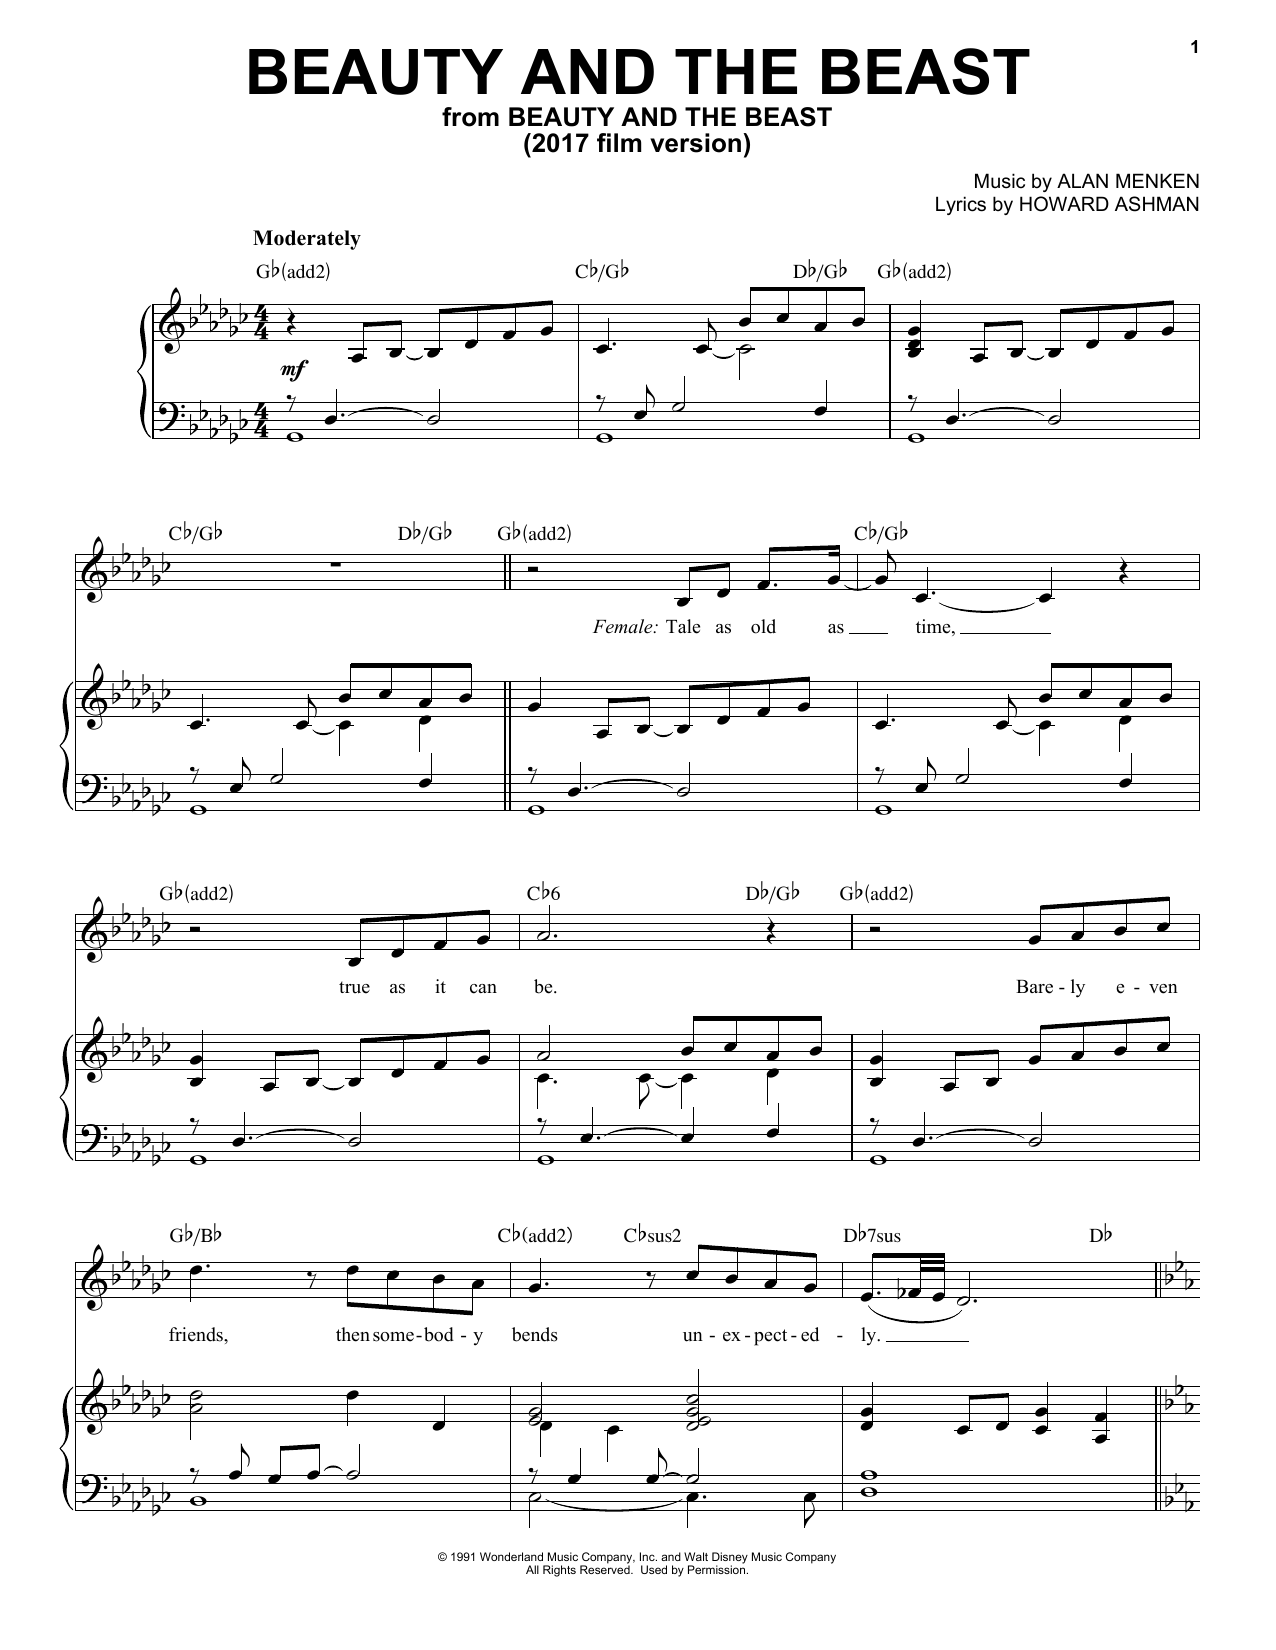 graphic about Beauty and the Beast Piano Sheet Music Free Printable referred to as Ariana Grande John Legend Magnificence And The Beast Sheet Audio Notes, Chords Down load Printable Piano Vocal - SKU: 181298